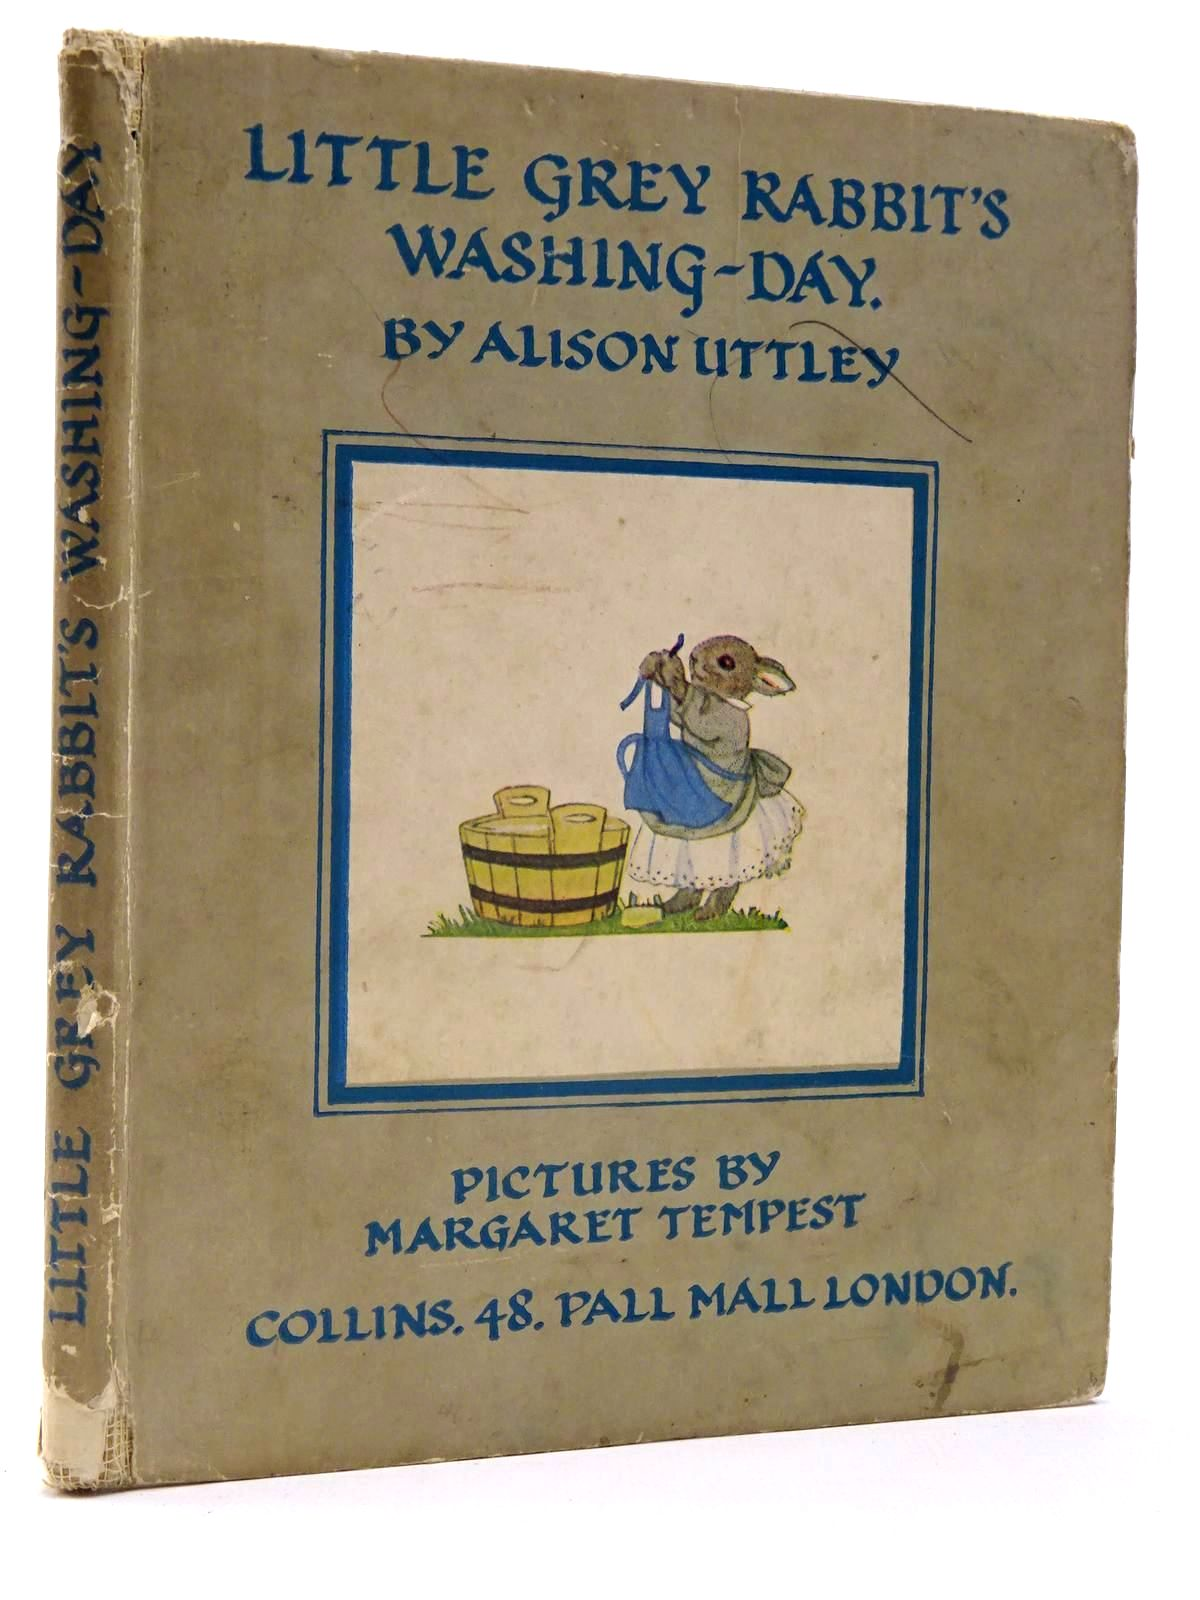 Photo of LITTLE GREY RABBIT'S WASHING-DAY written by Uttley, Alison illustrated by Tempest, Margaret published by Collins (STOCK CODE: 2130240)  for sale by Stella & Rose's Books